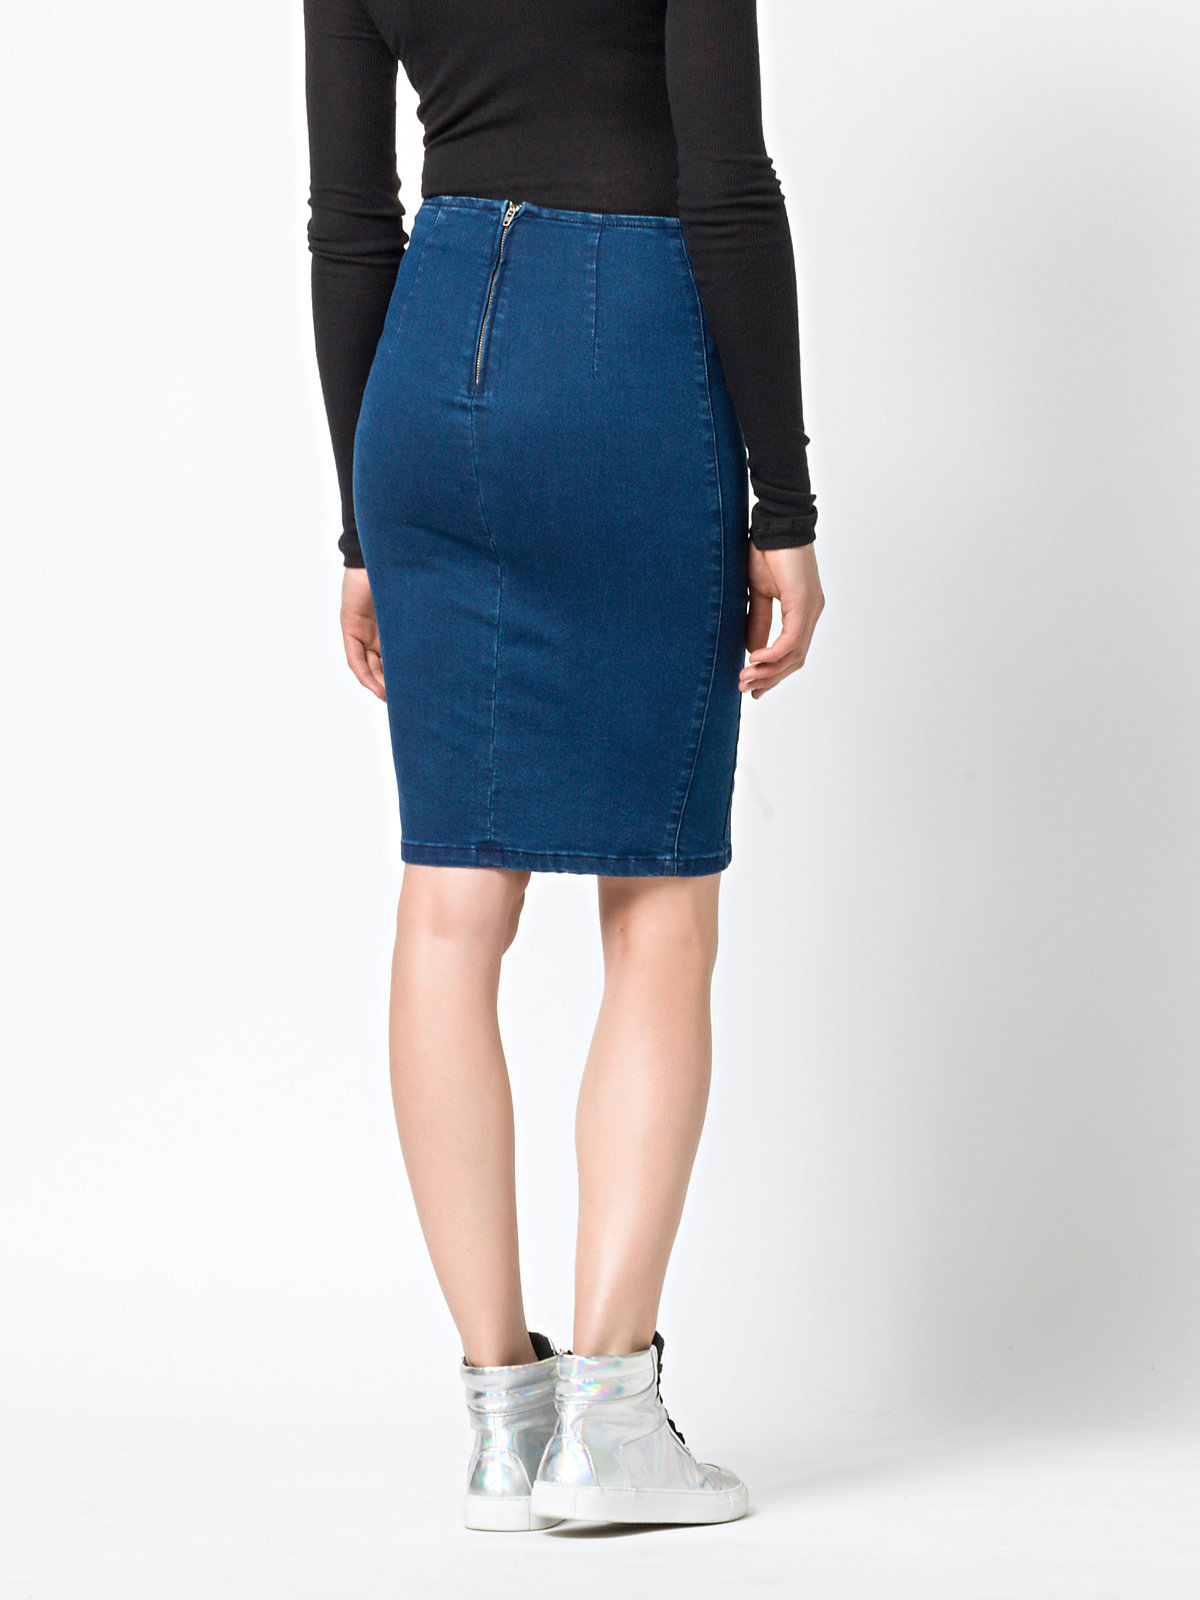 patrizia pepe high waist maxi stretch denim skirt in blue